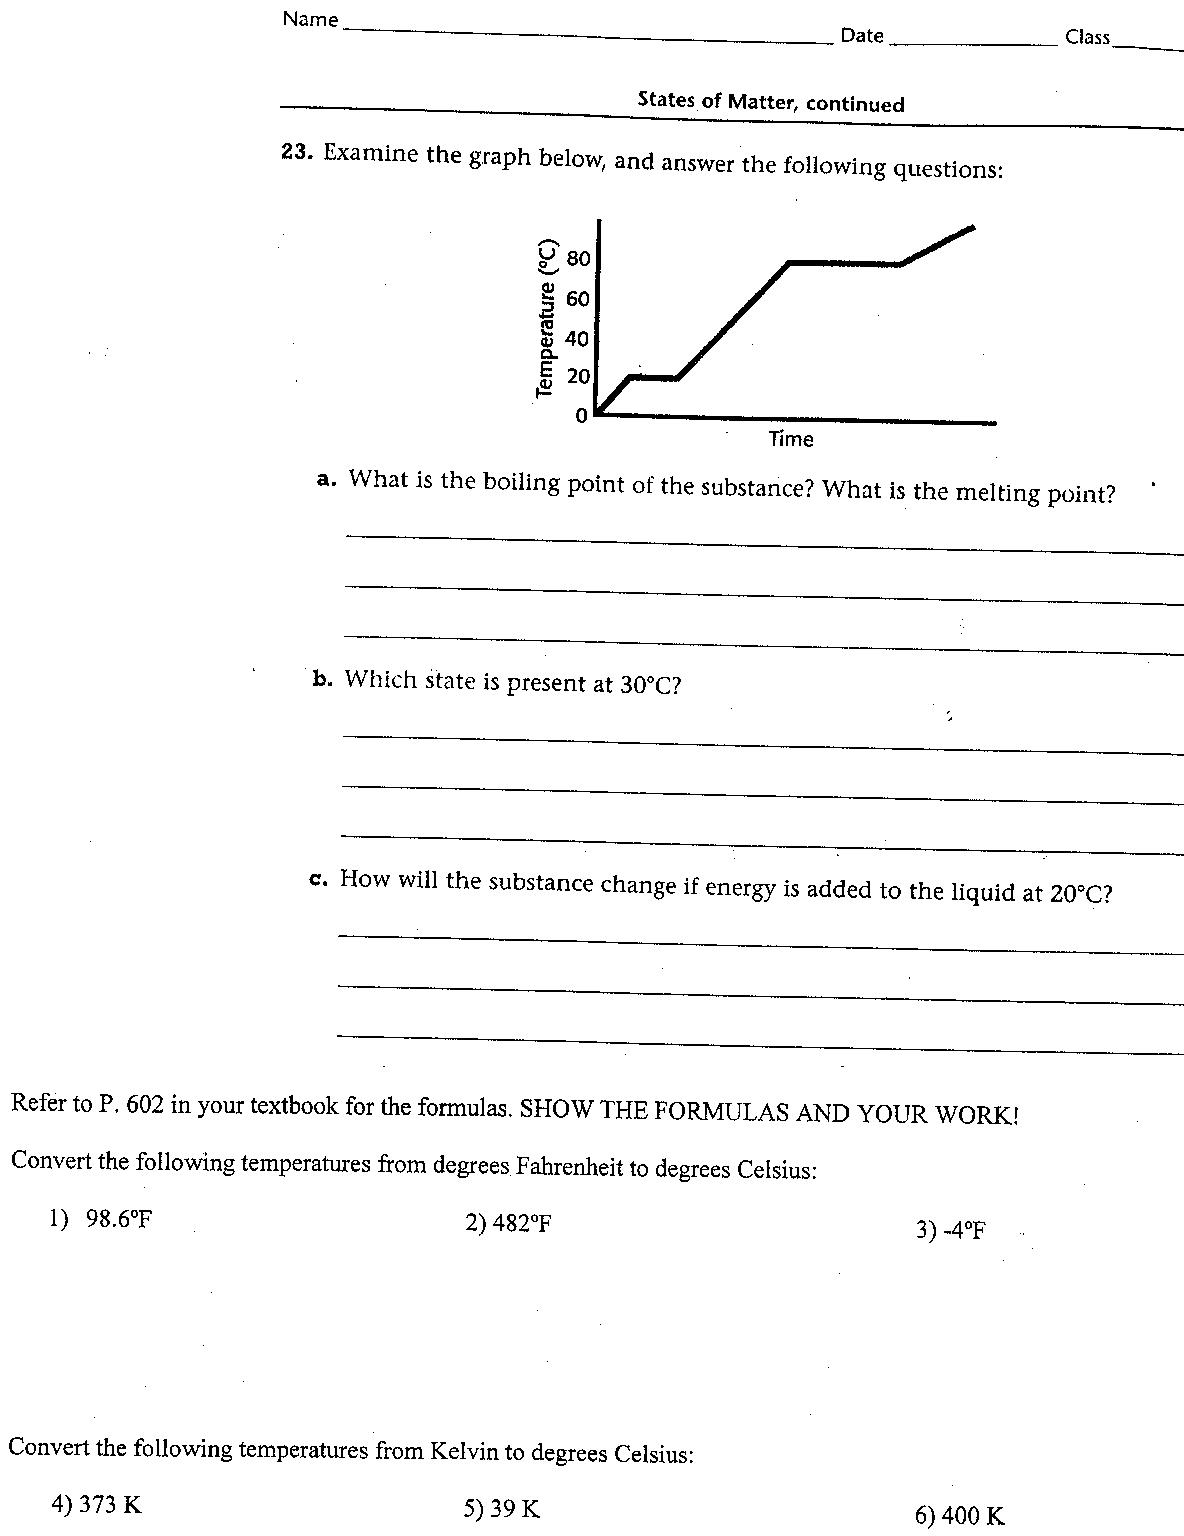 Heating Curve Worksheet Ver 2